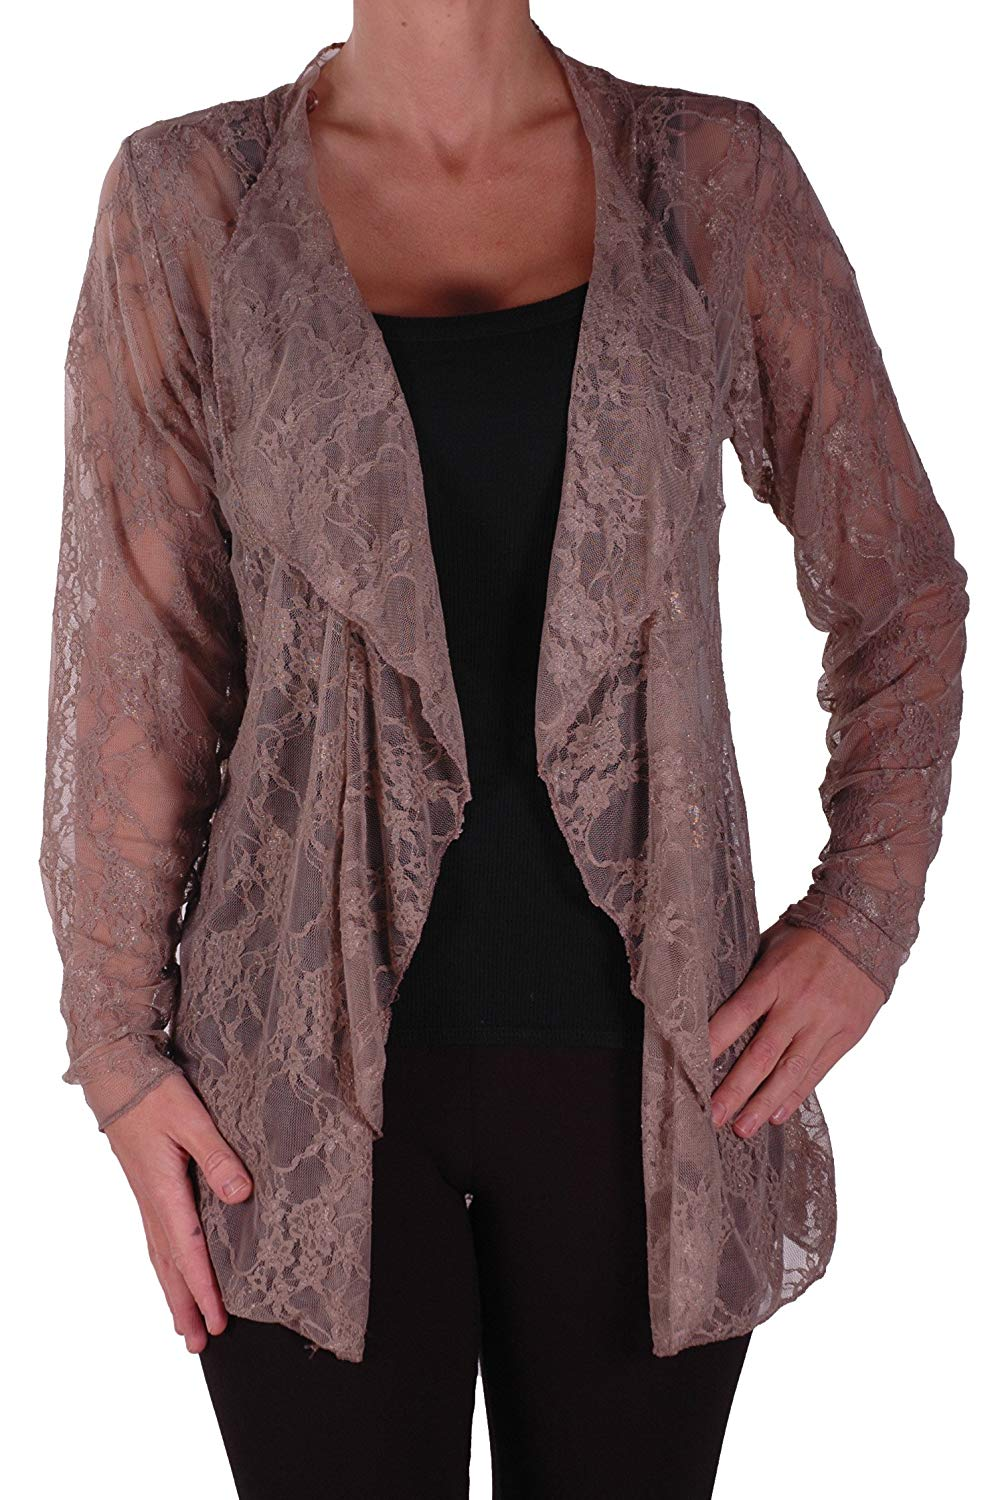 New Plus Size Womens Floral Lace Open Cardigan Ladies Long Sleeve Waterfall Top